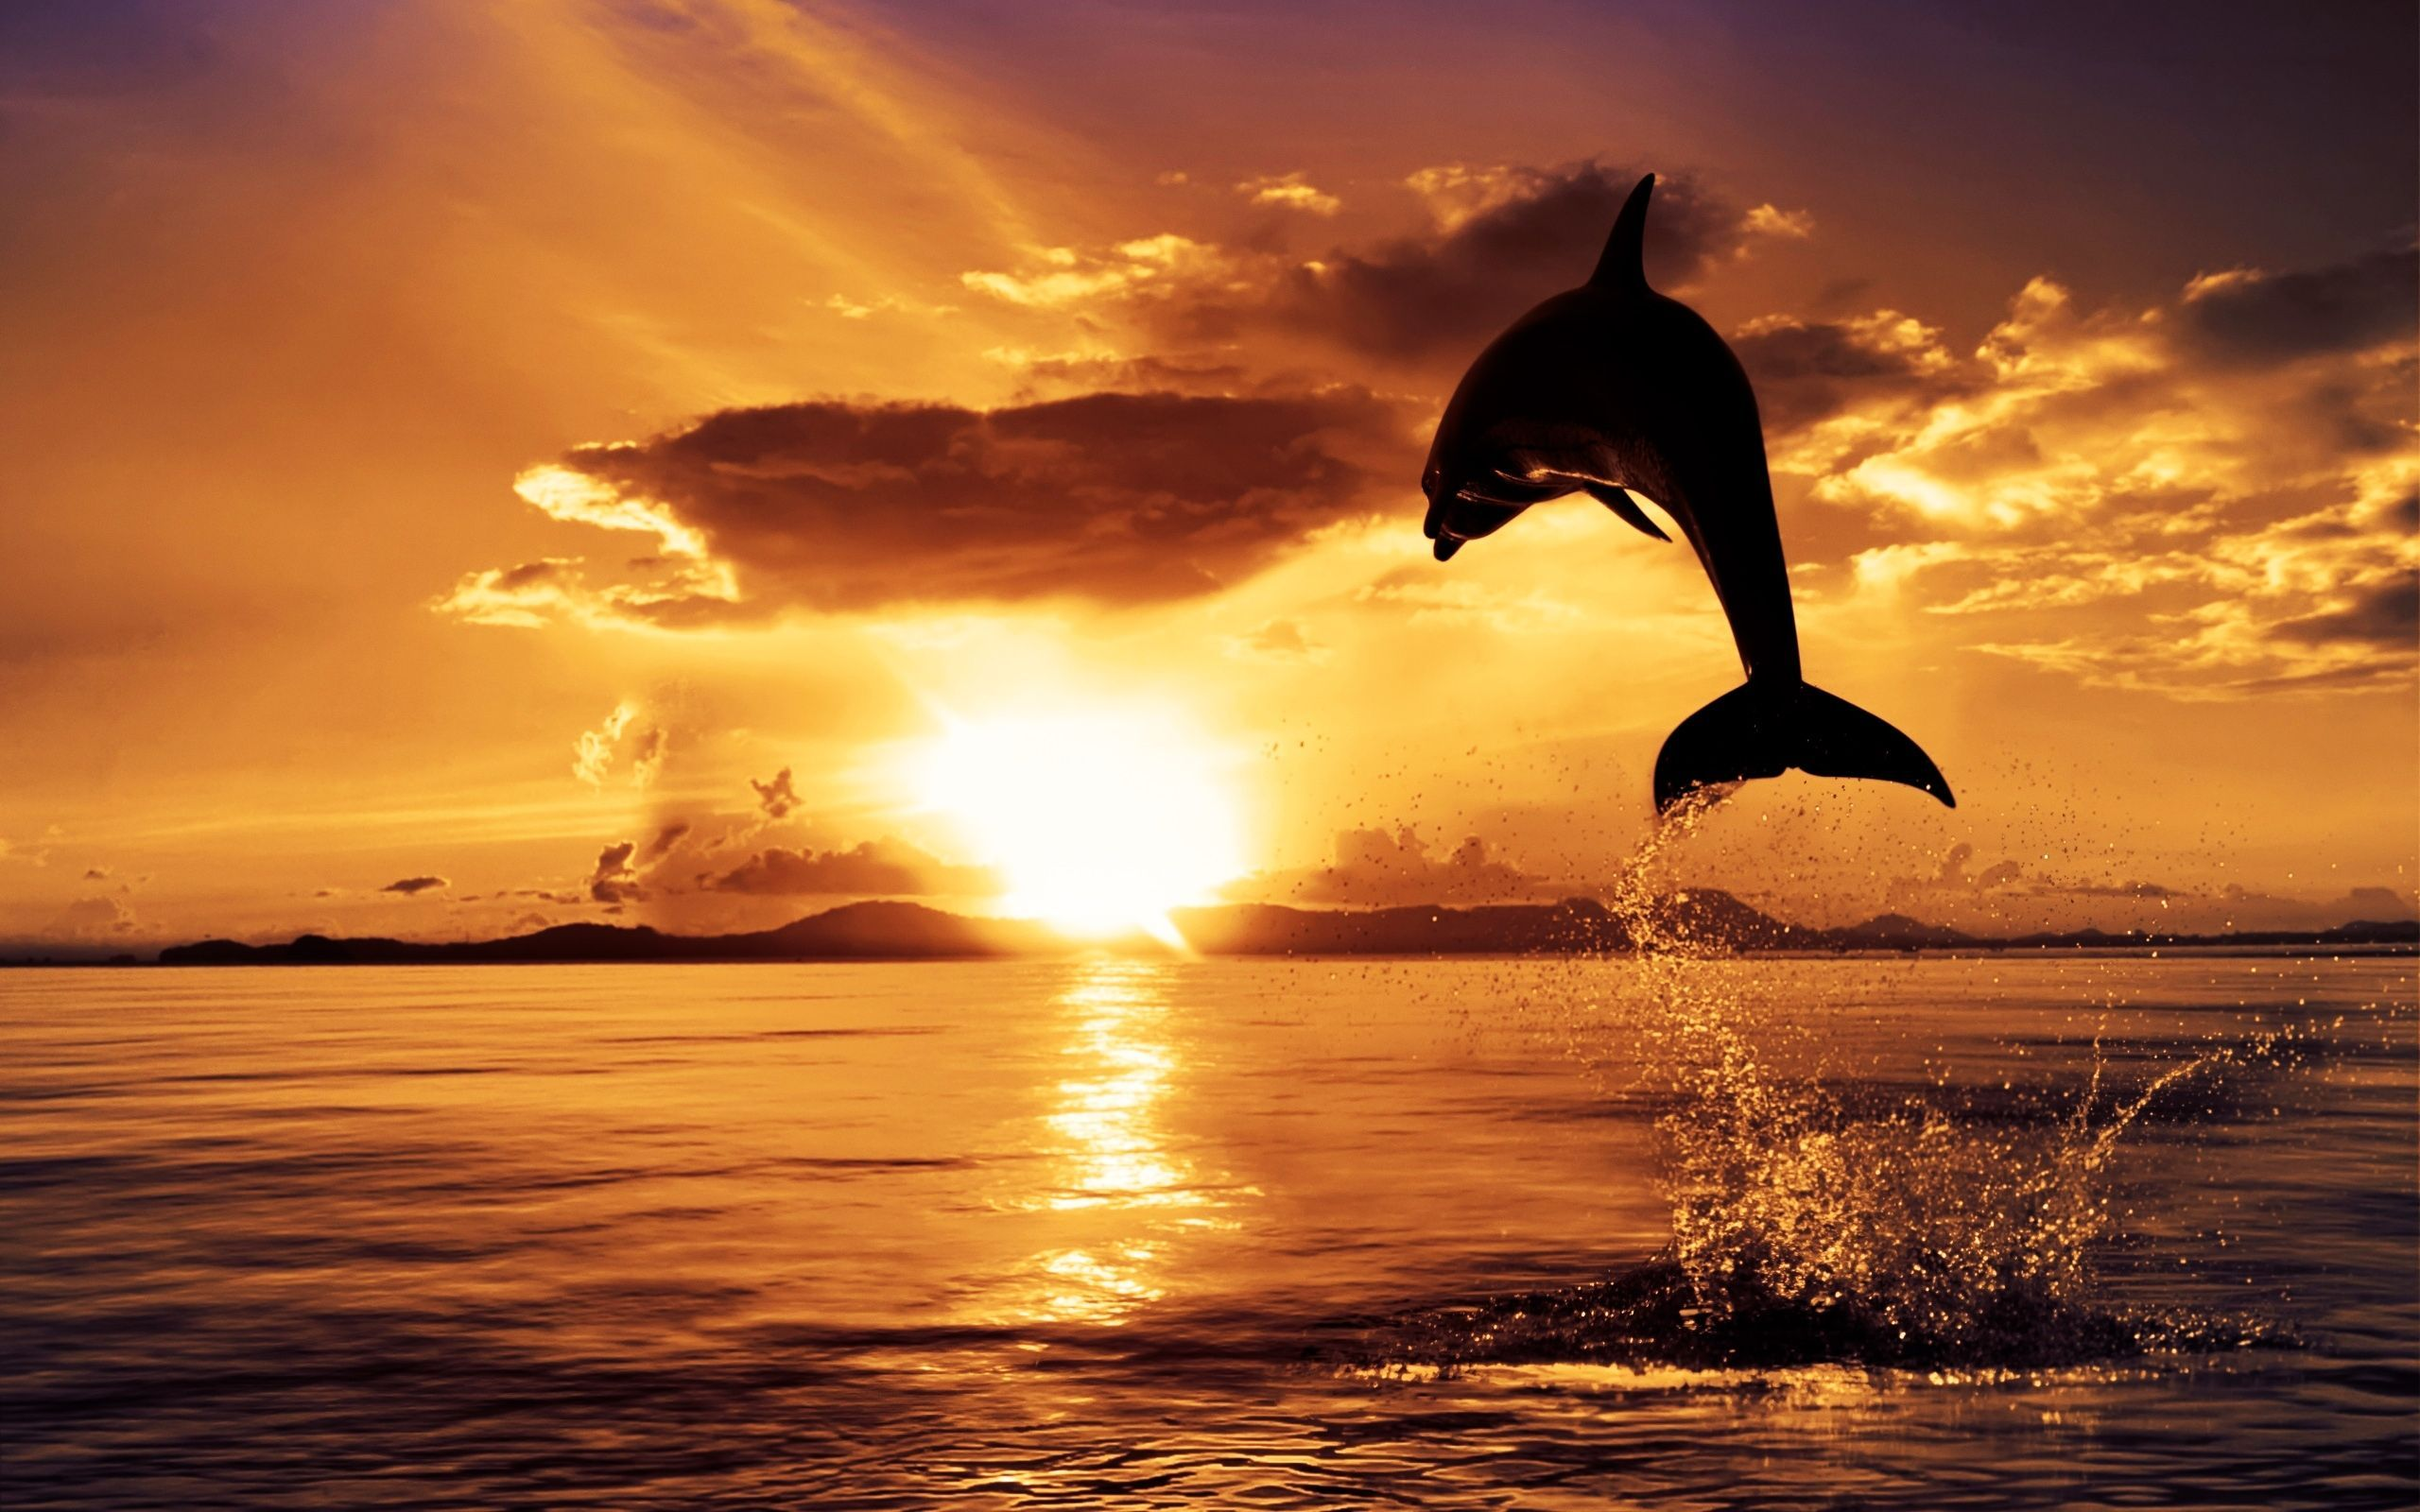 ... sunset-hd-wallpapers-10 ...